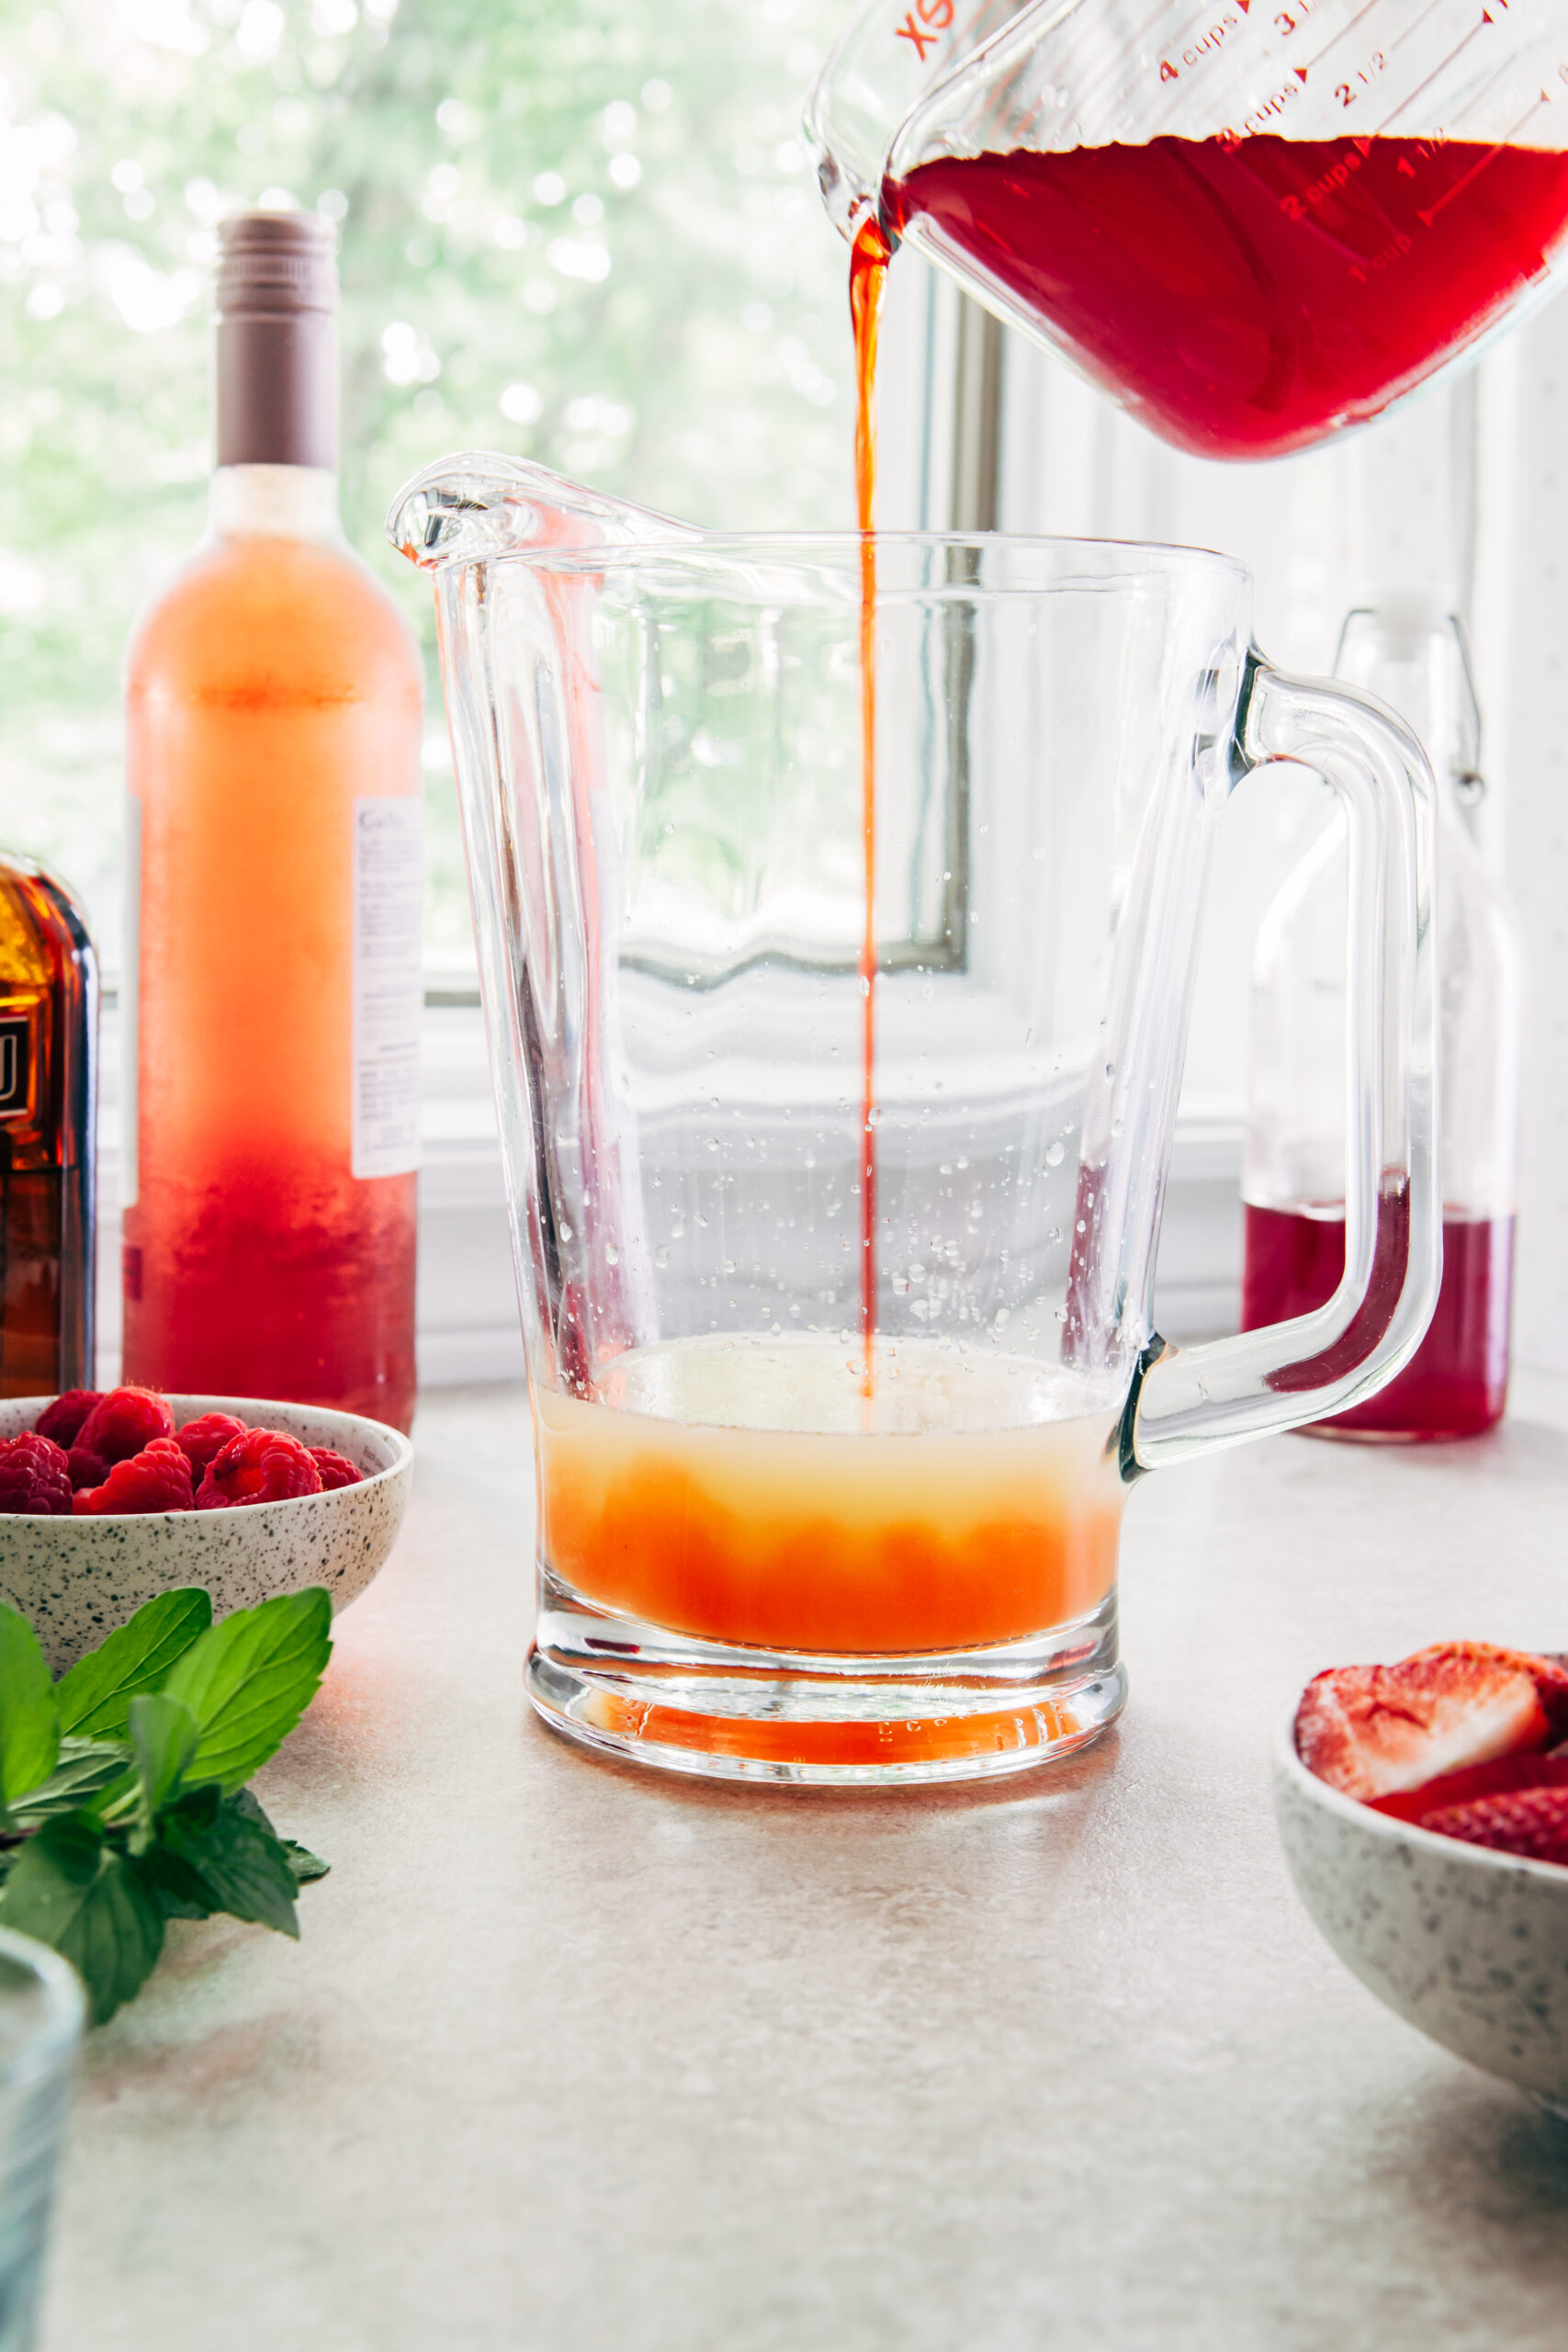 Strawberry simple syrup pouring from a measuring cup into a glass pitcher of sangria.